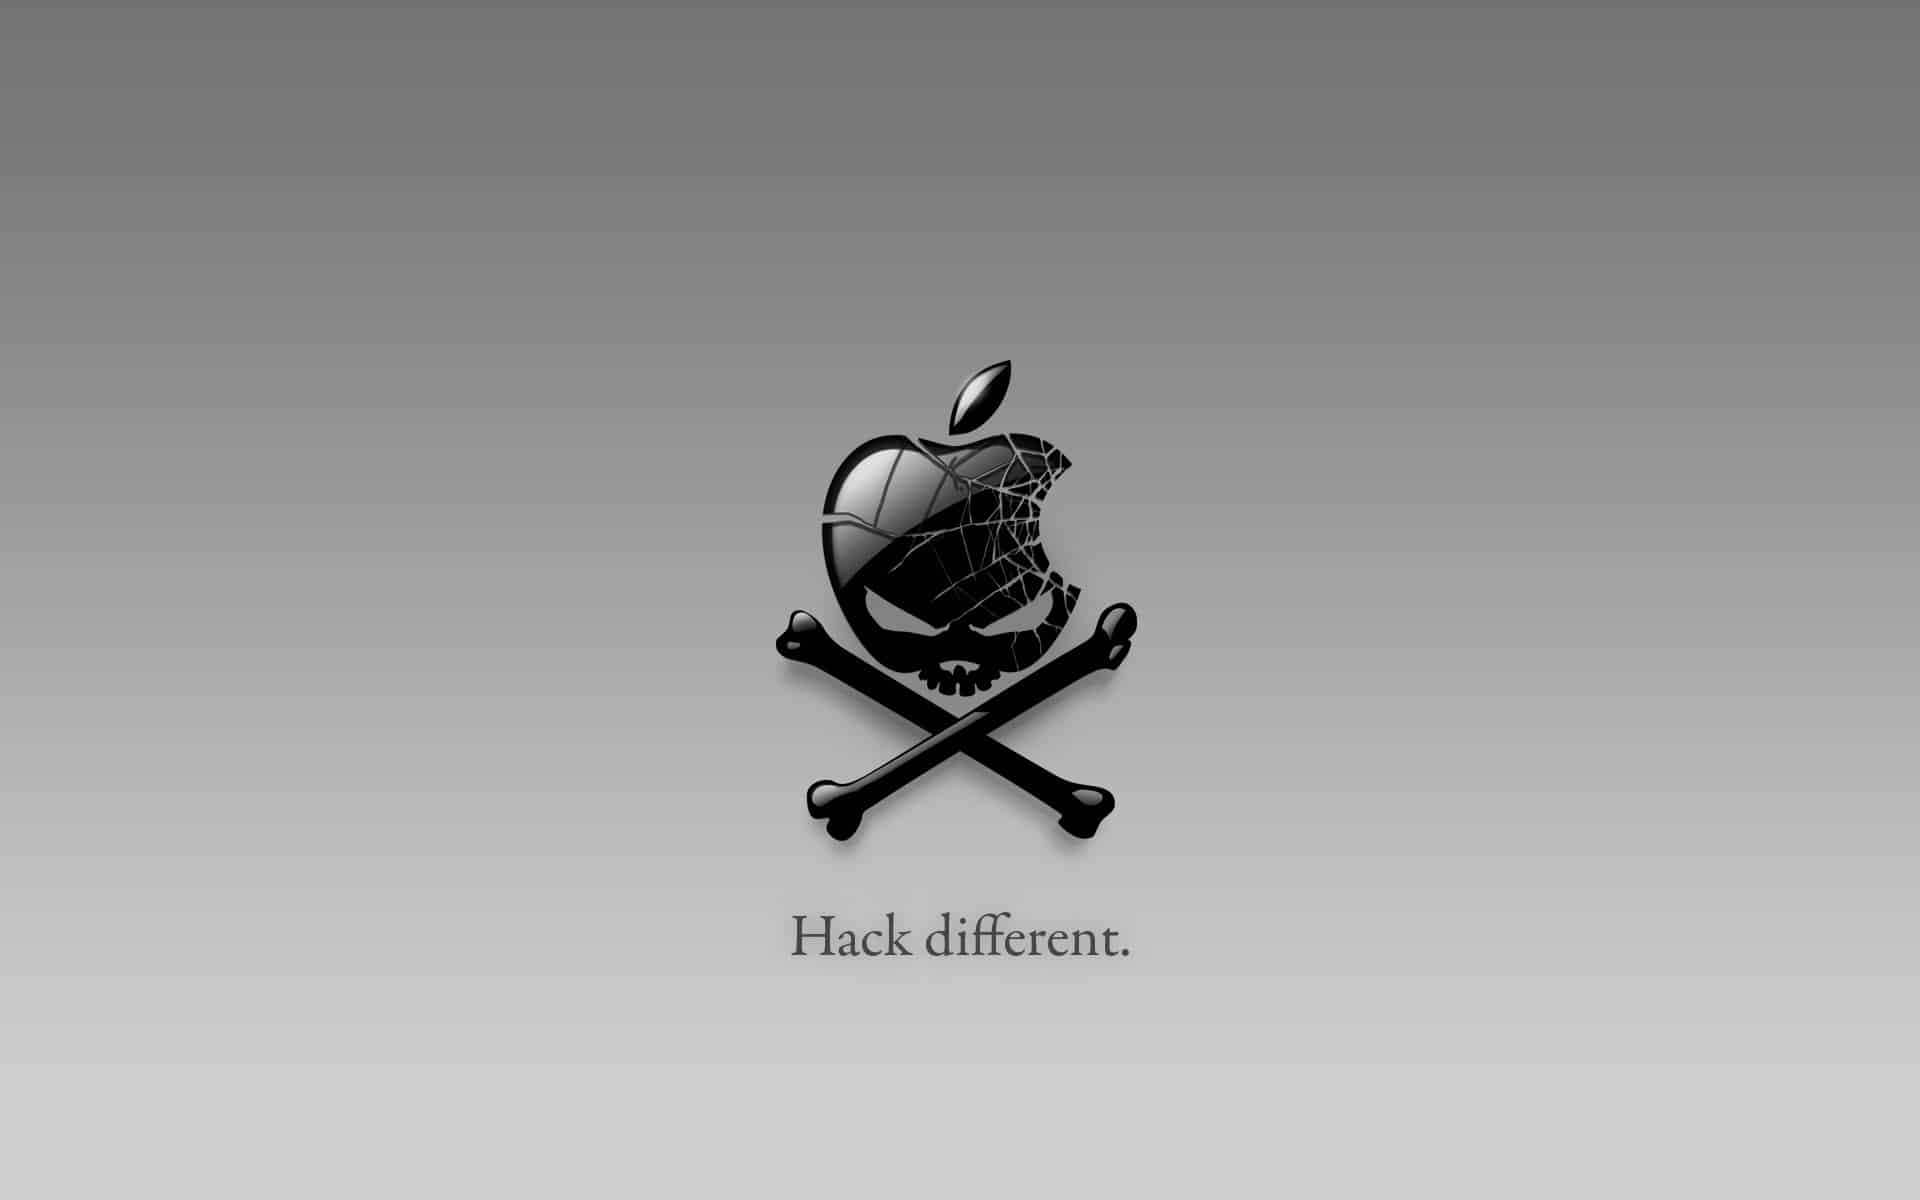 Apple Hack AntiSec